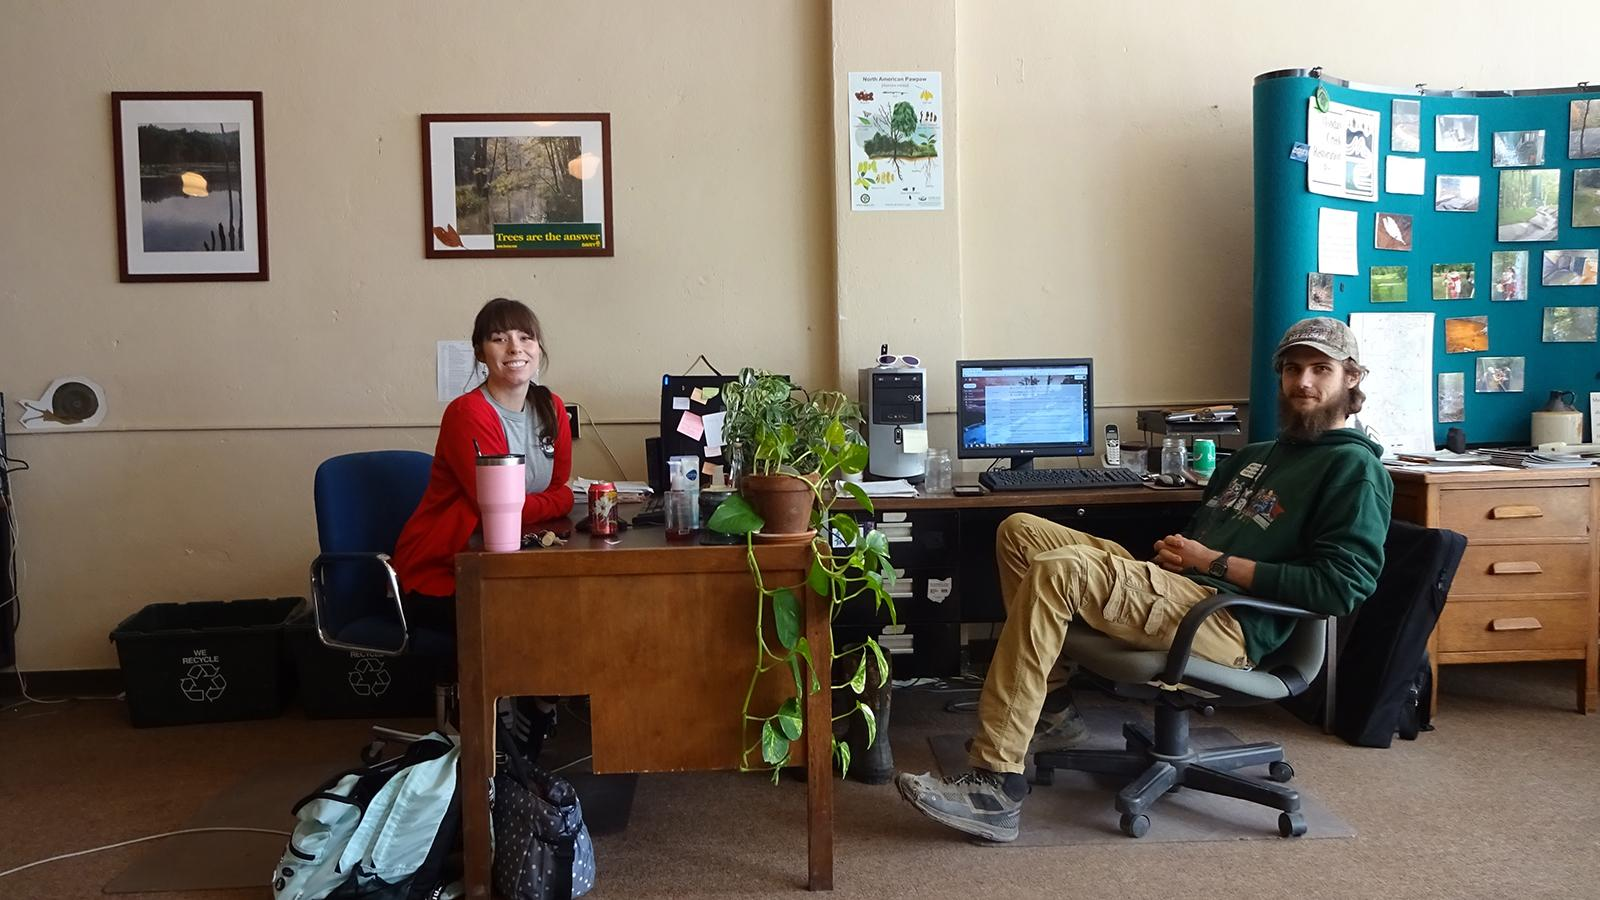 MCRP's current Americorps members: Kylee (left) and Ricky (right) in MCRP's office